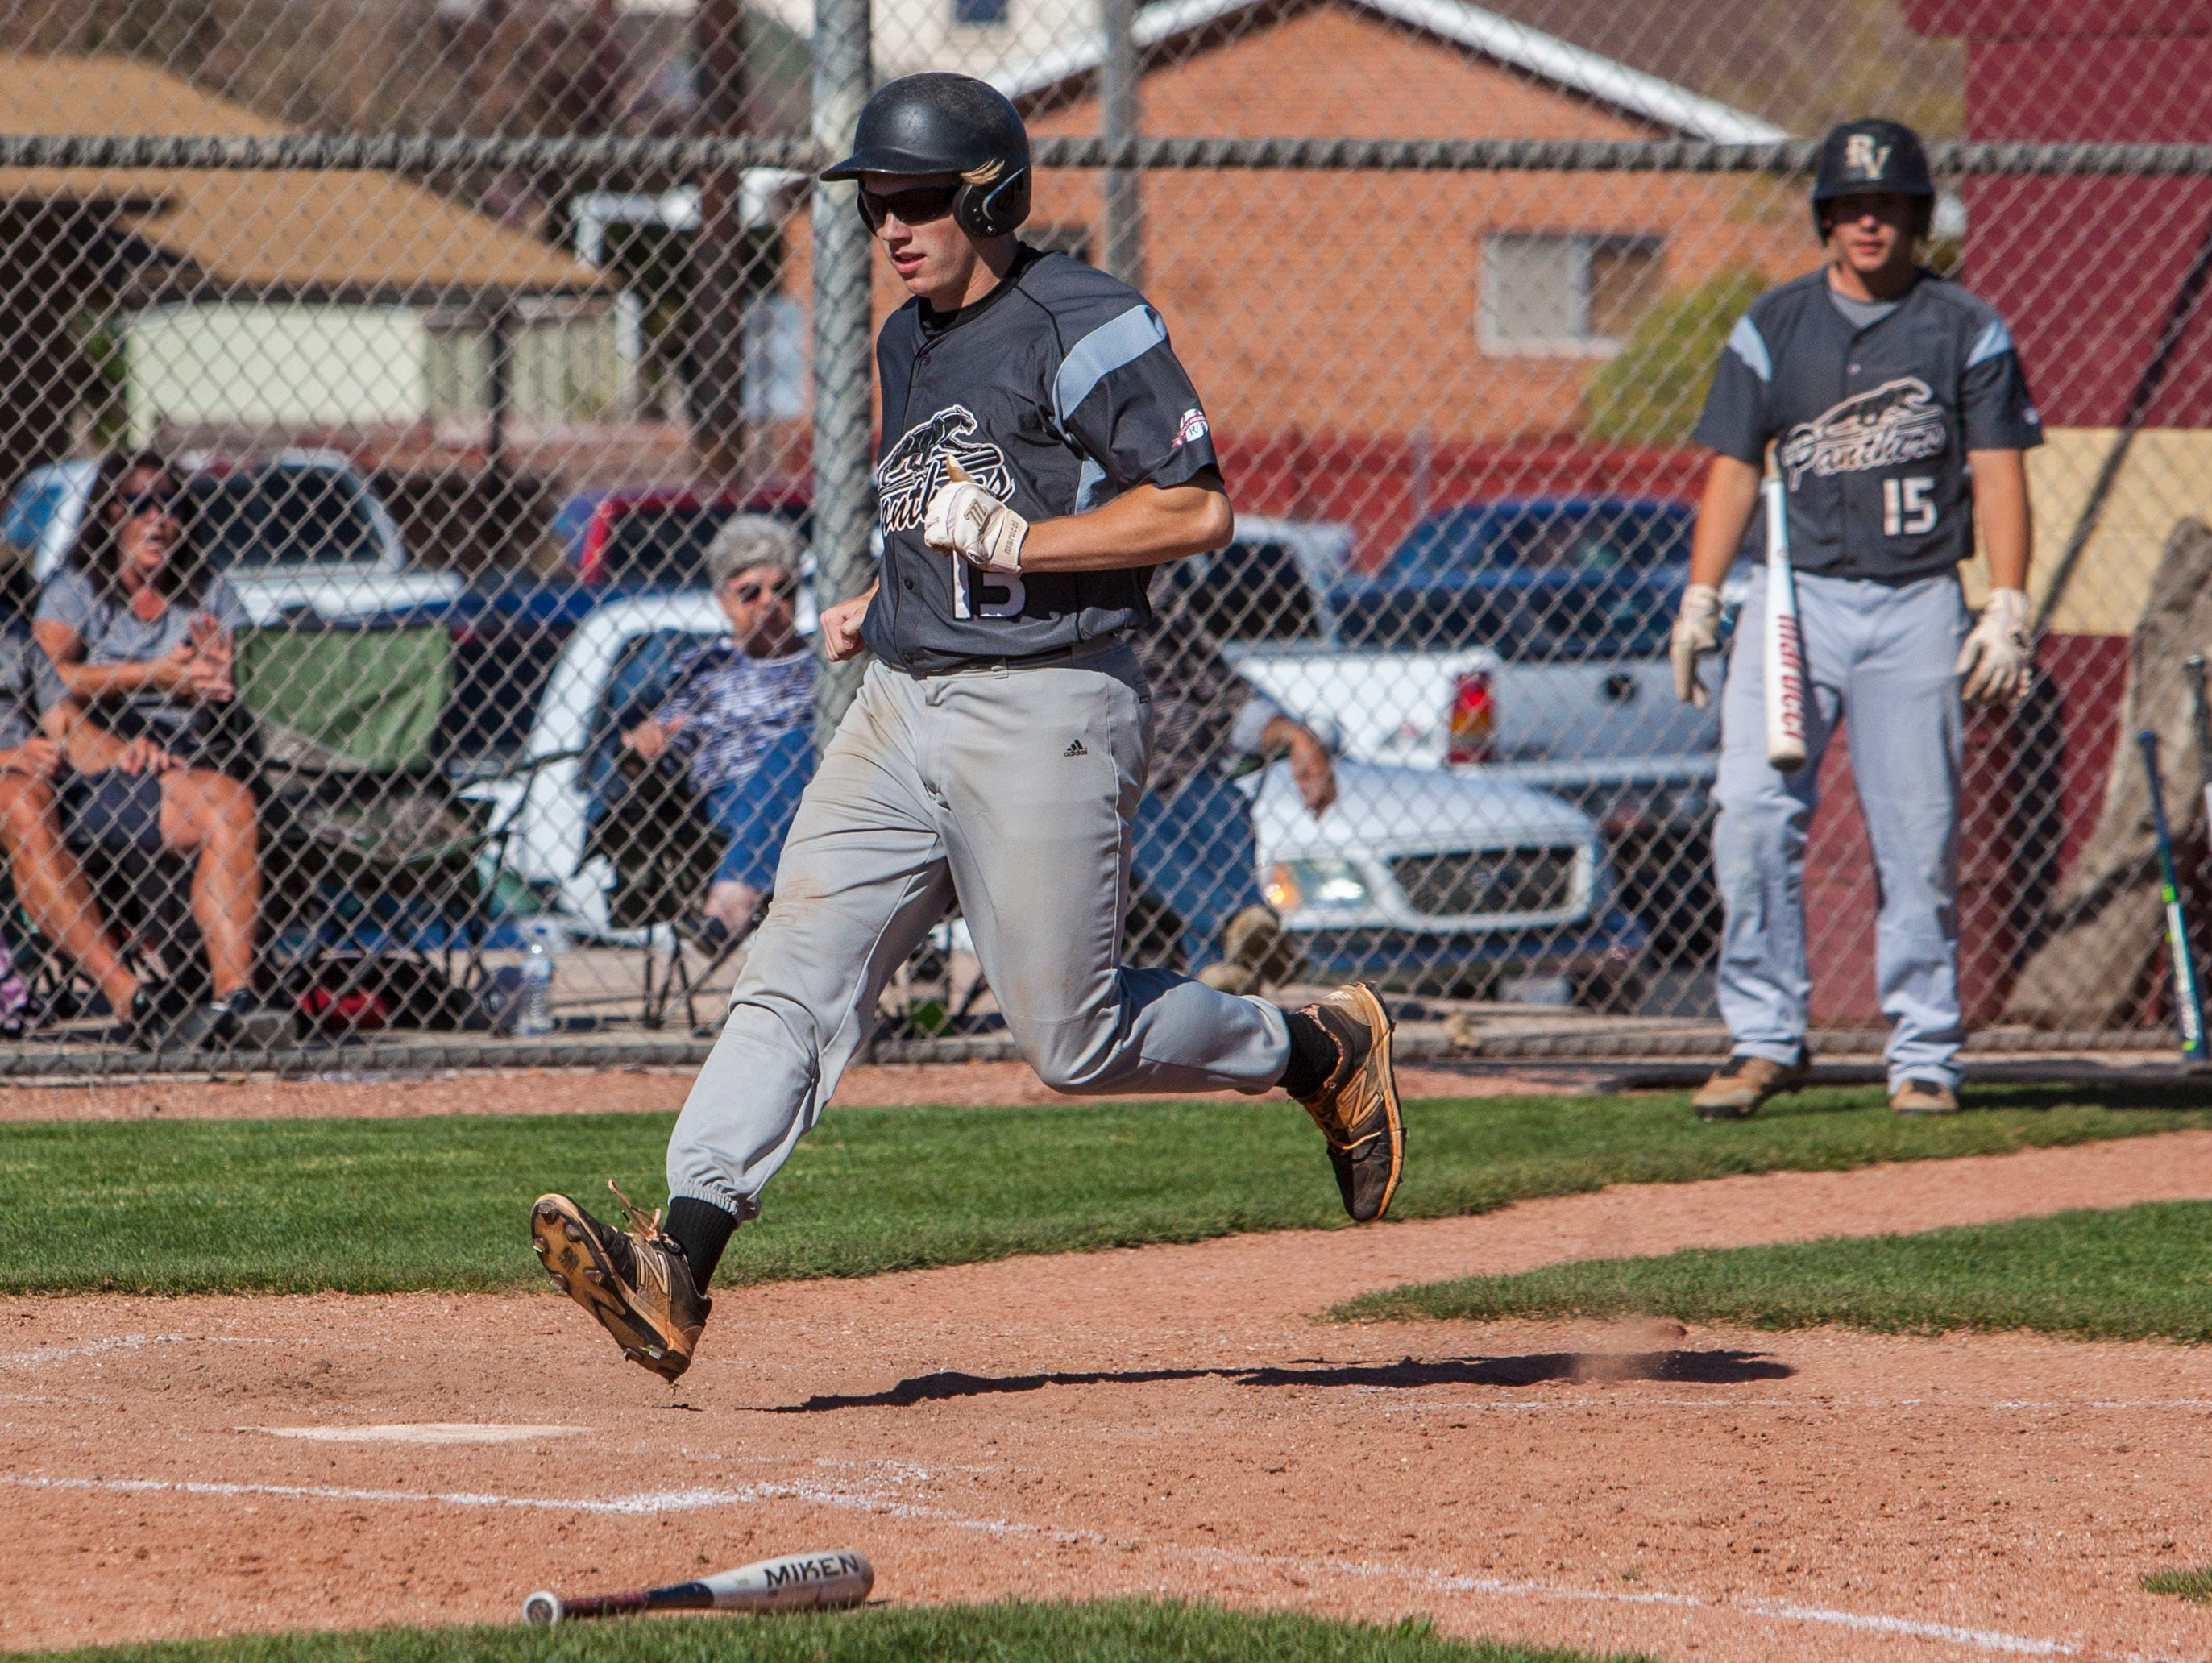 Pine View's Jared Striling crosses home plate for a score during the game against Cedar, Tuesday, April 19, 2016.